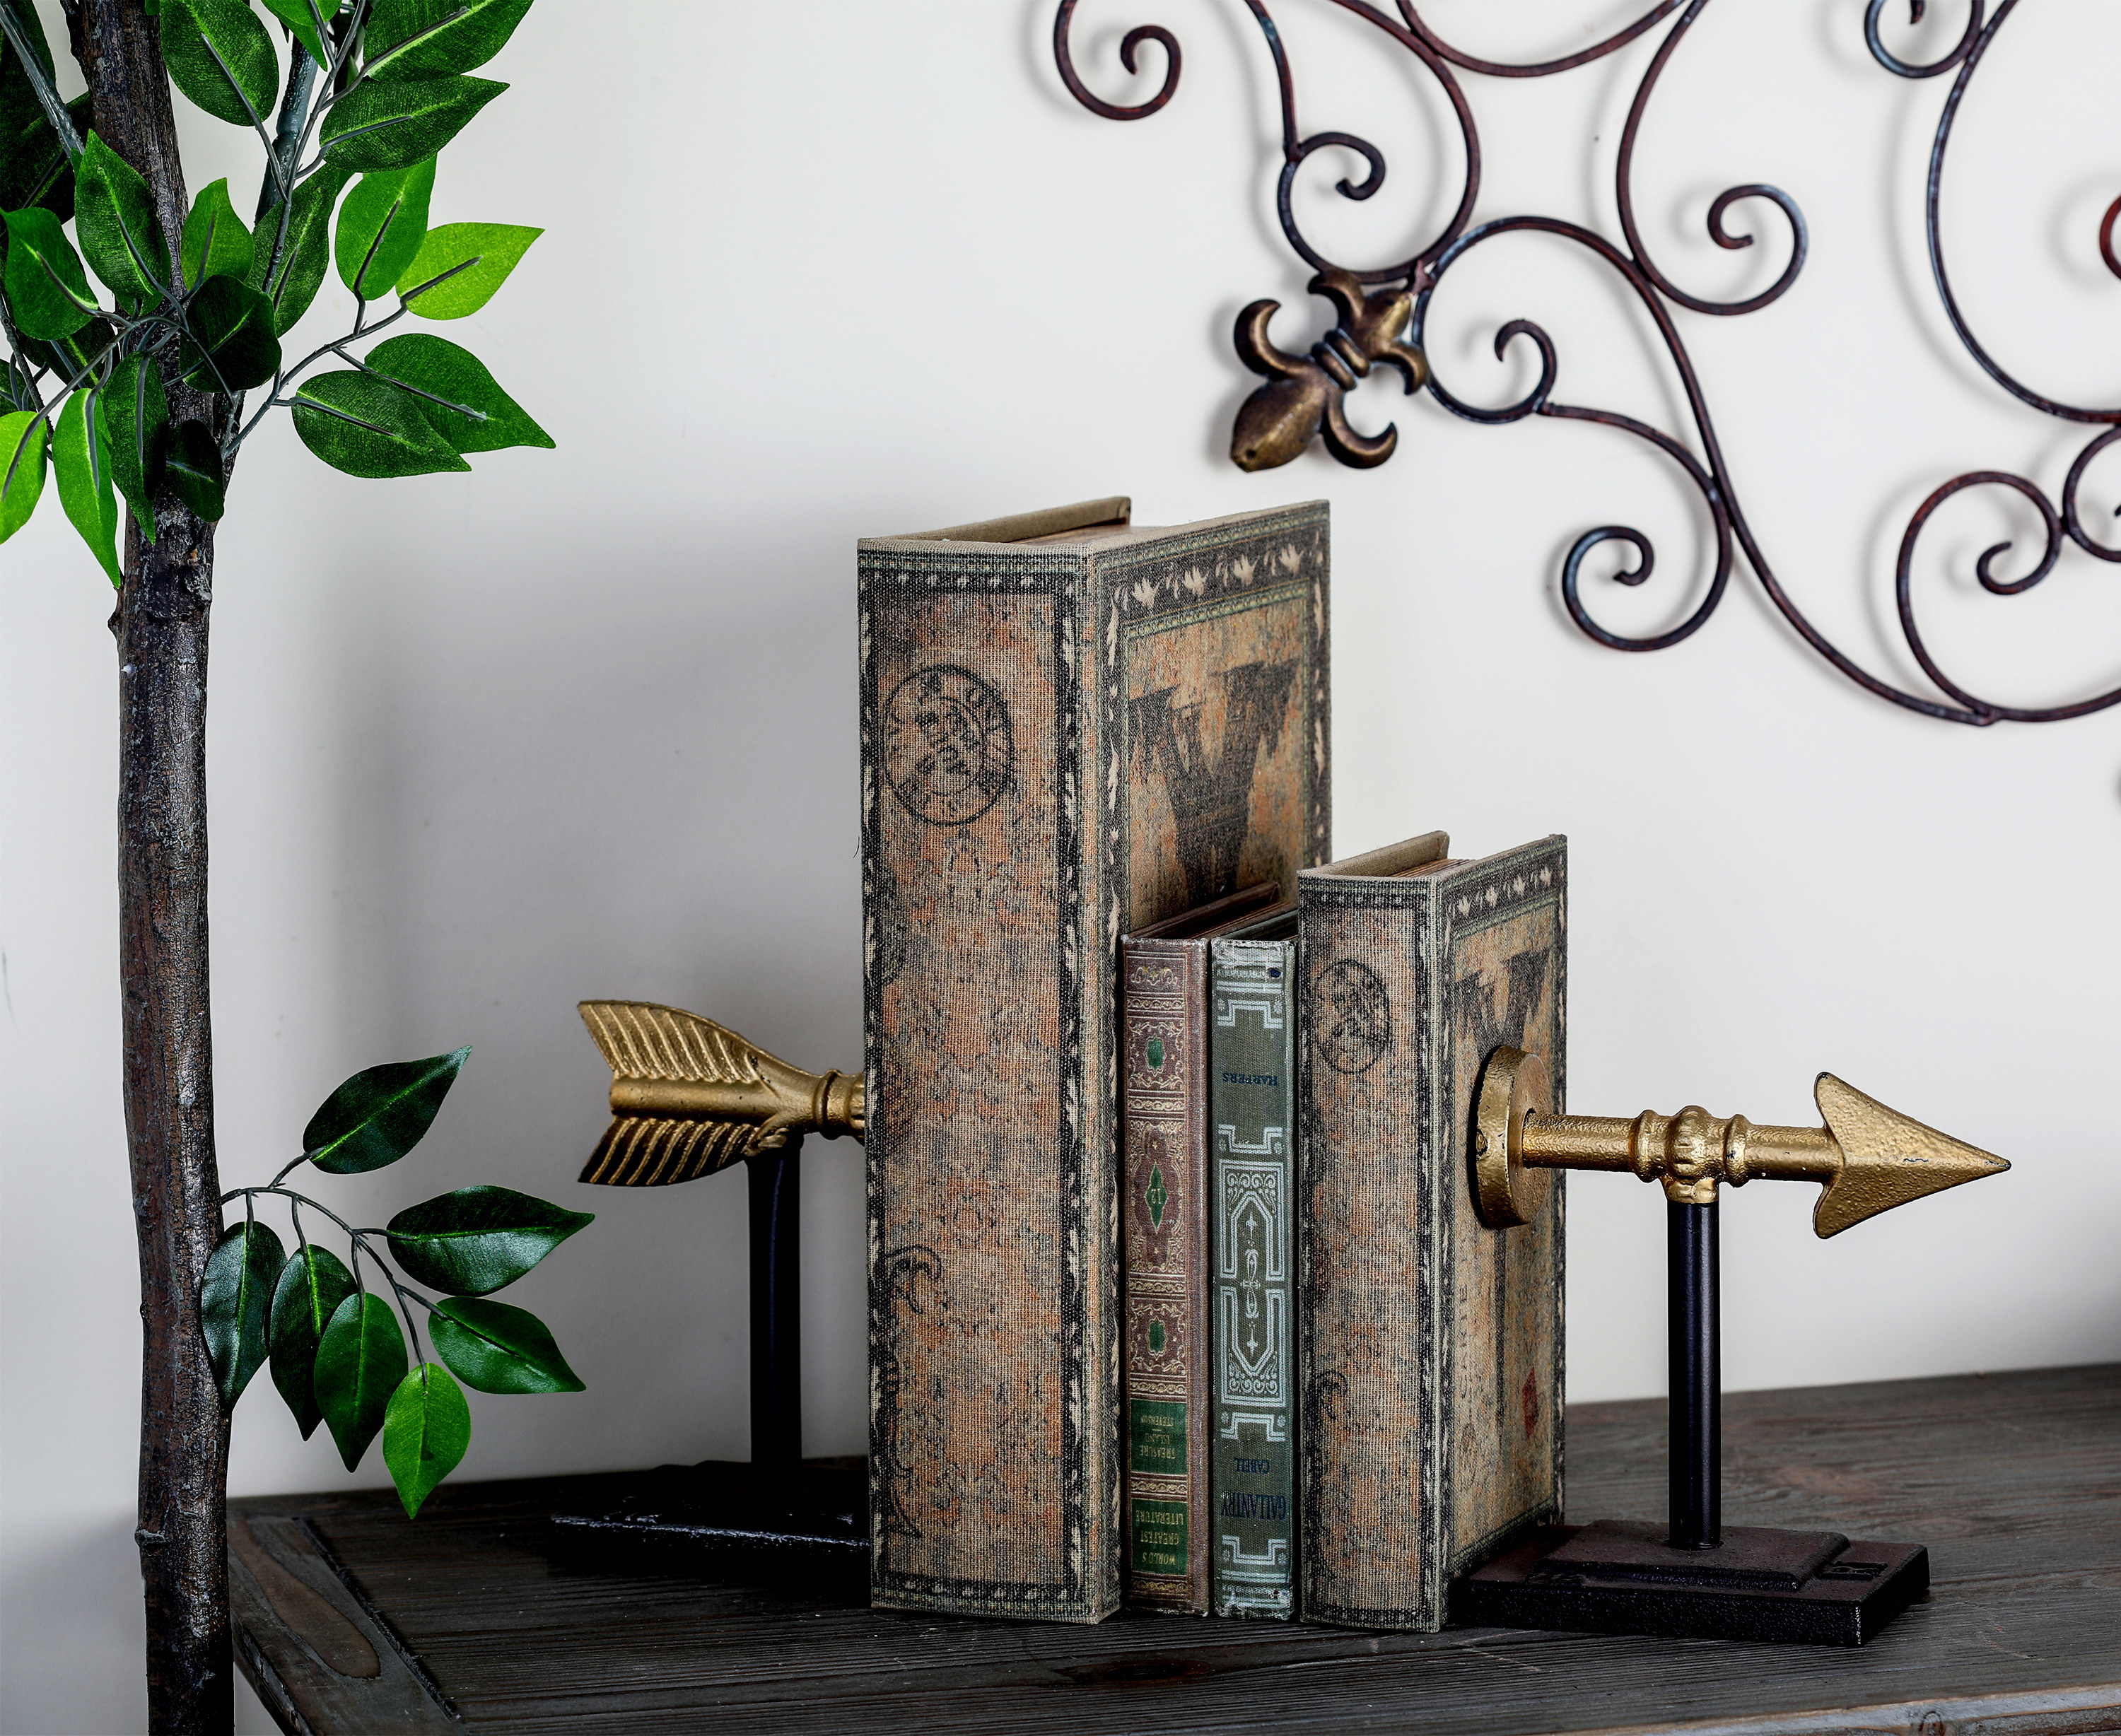 Two gold and black bookends that look like an arrow shooting through the books